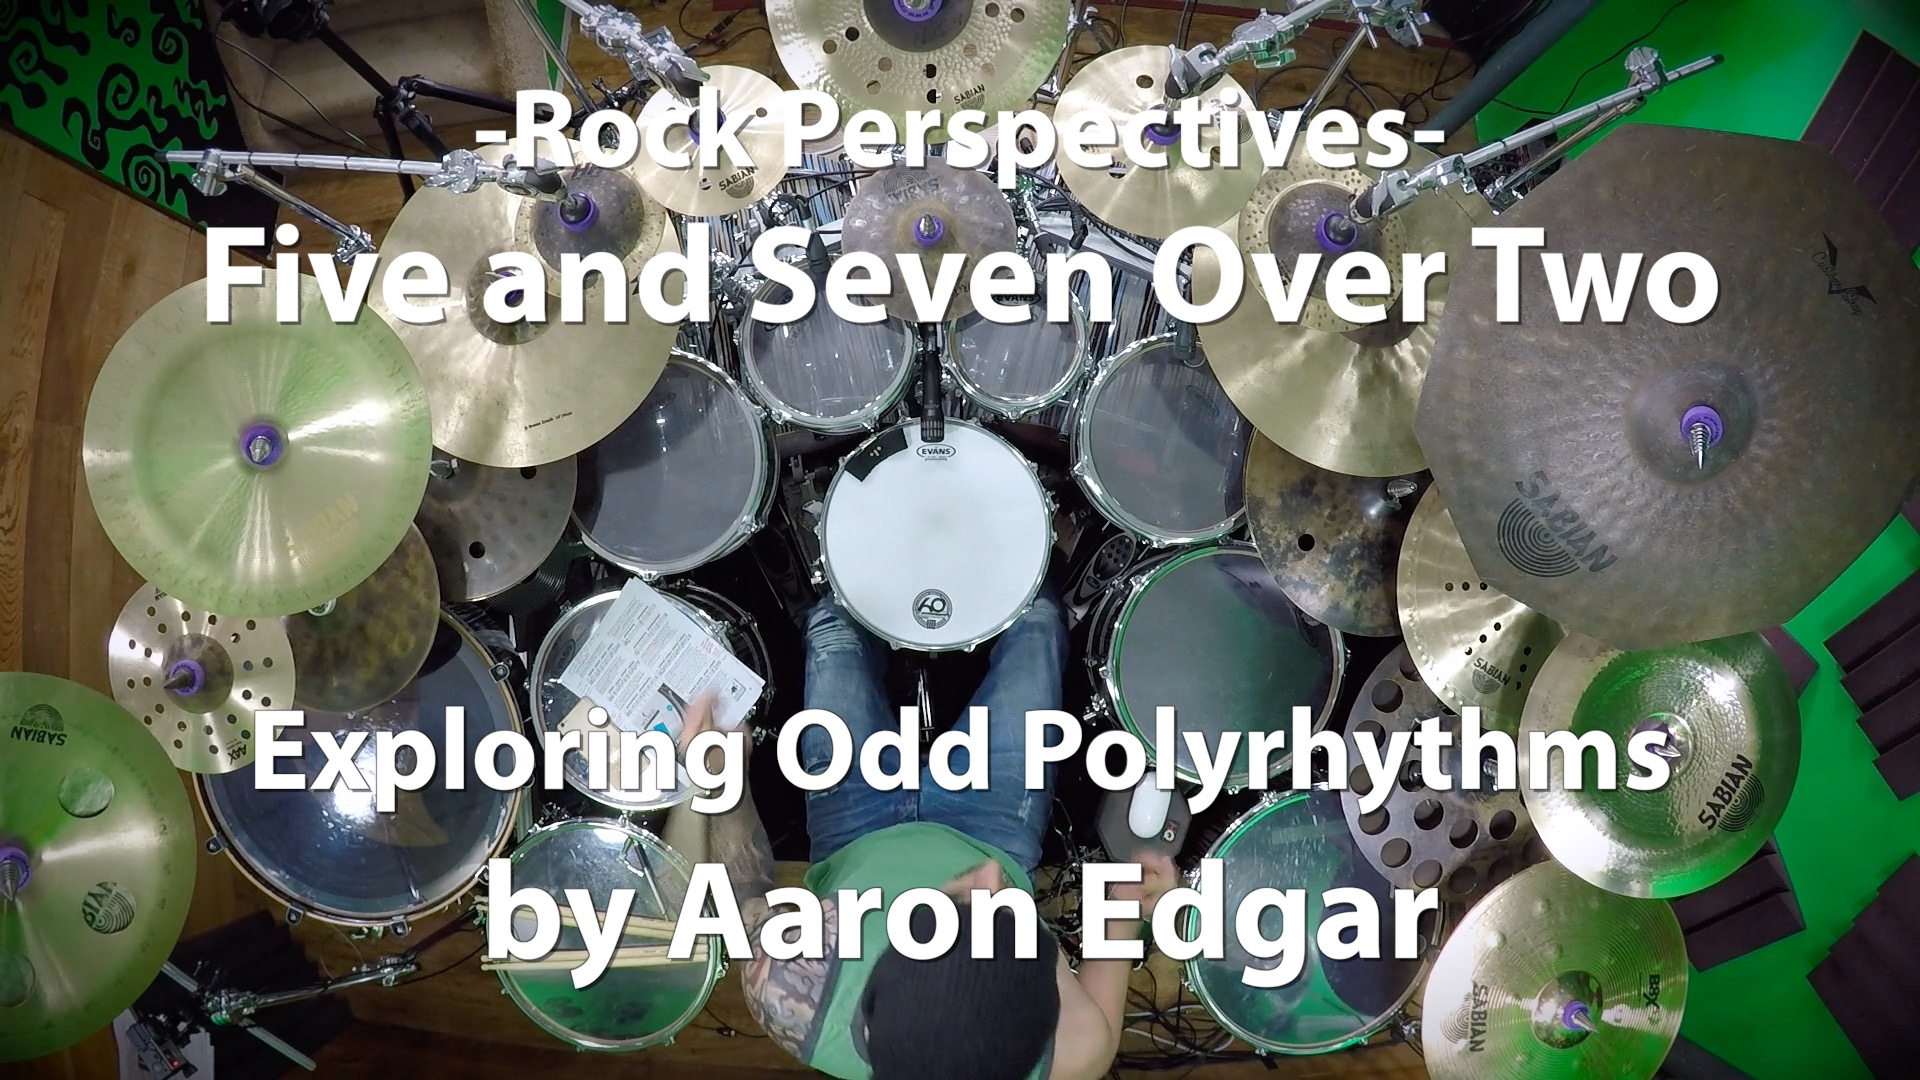 Category/education - Five And Seven Over Two Exploring Odd Polyrhythms